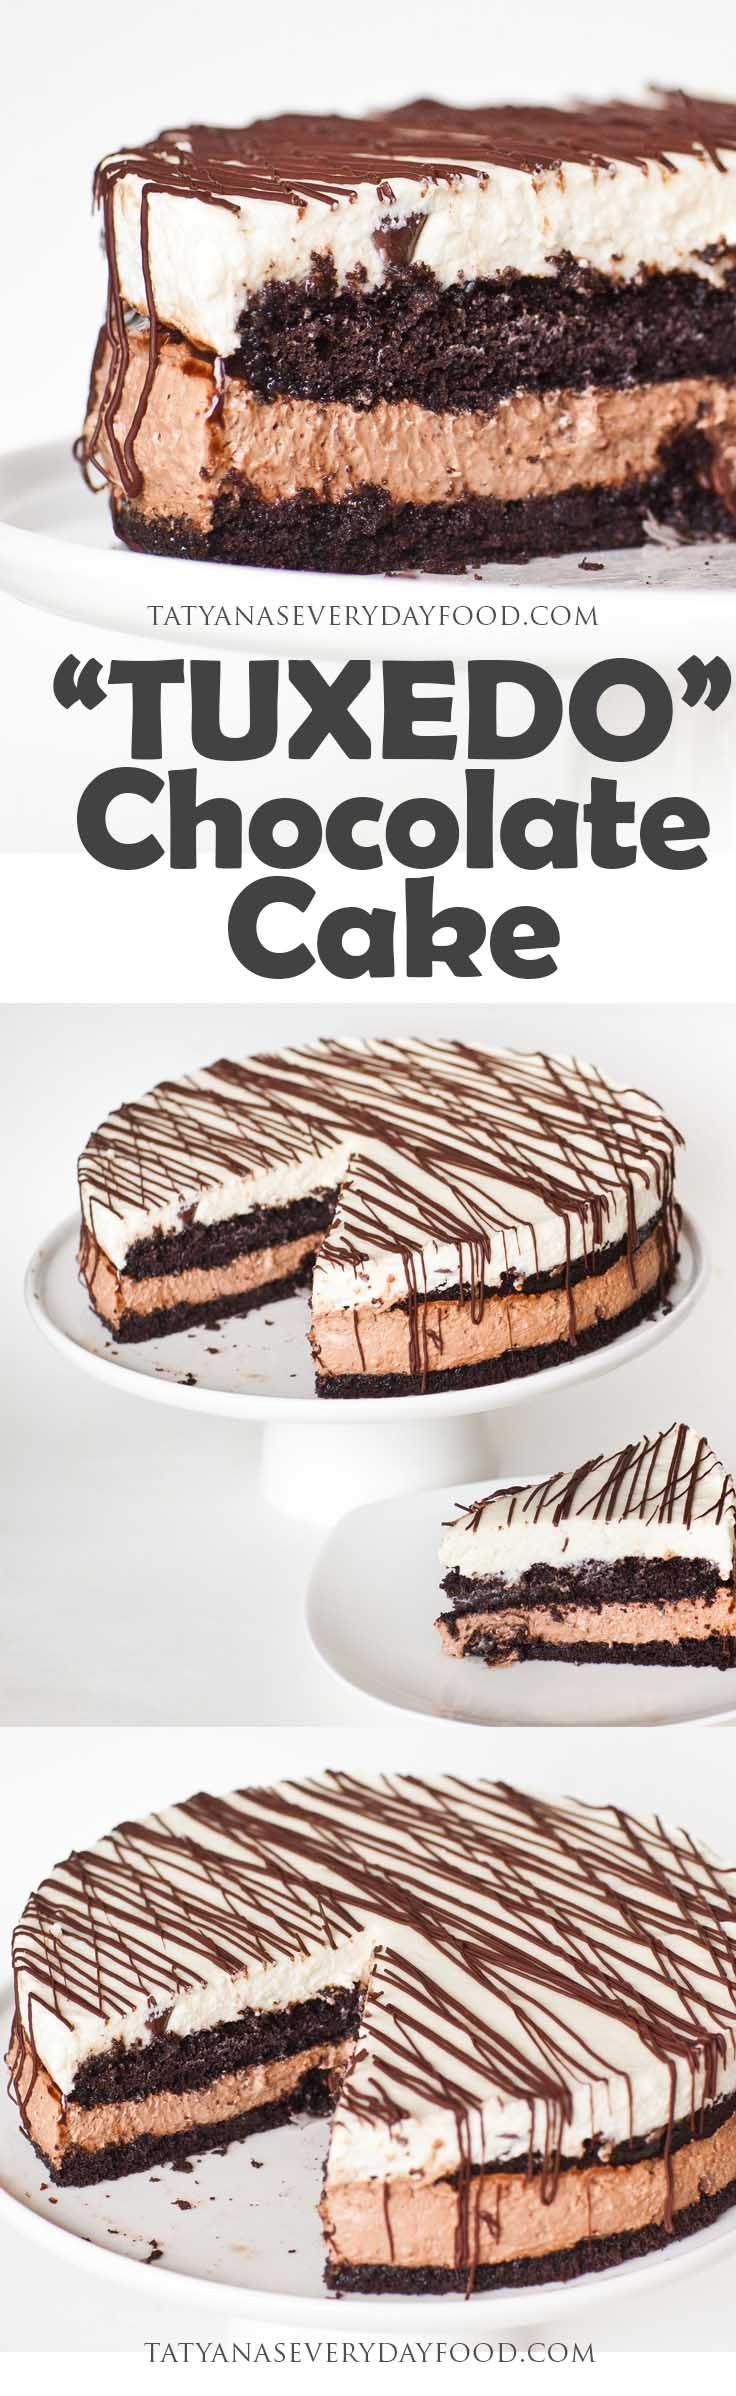 """Tuxedo"" cake is a cake like no other! Made with two layers of no-bake cheesecake filling and rich, chocolate cake layers, which are soaked with chocolate syrup and caramel sauce! Every bite of this cake is heavenly and melts in your mouth! The combination of cheesecake and chocolate is irresistible! Watch my video recipe for […]"